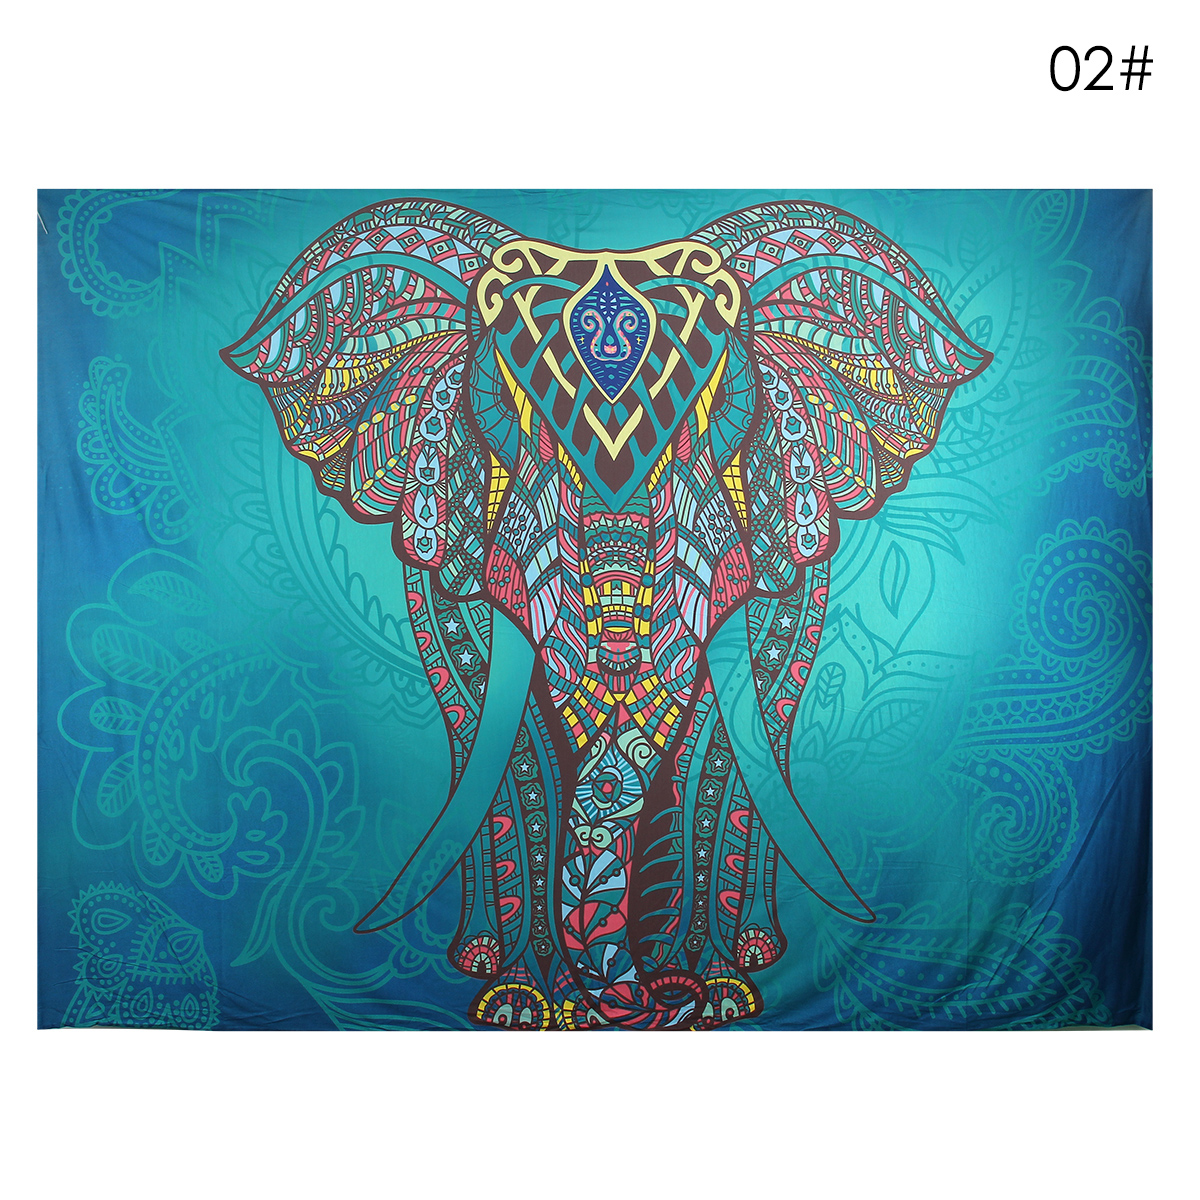 Elephant Mandala Tapestry Throw Towel Hippie Tapestry Floral Printed Home Decor Wall Tapestries Bedspread 210*150CM 8